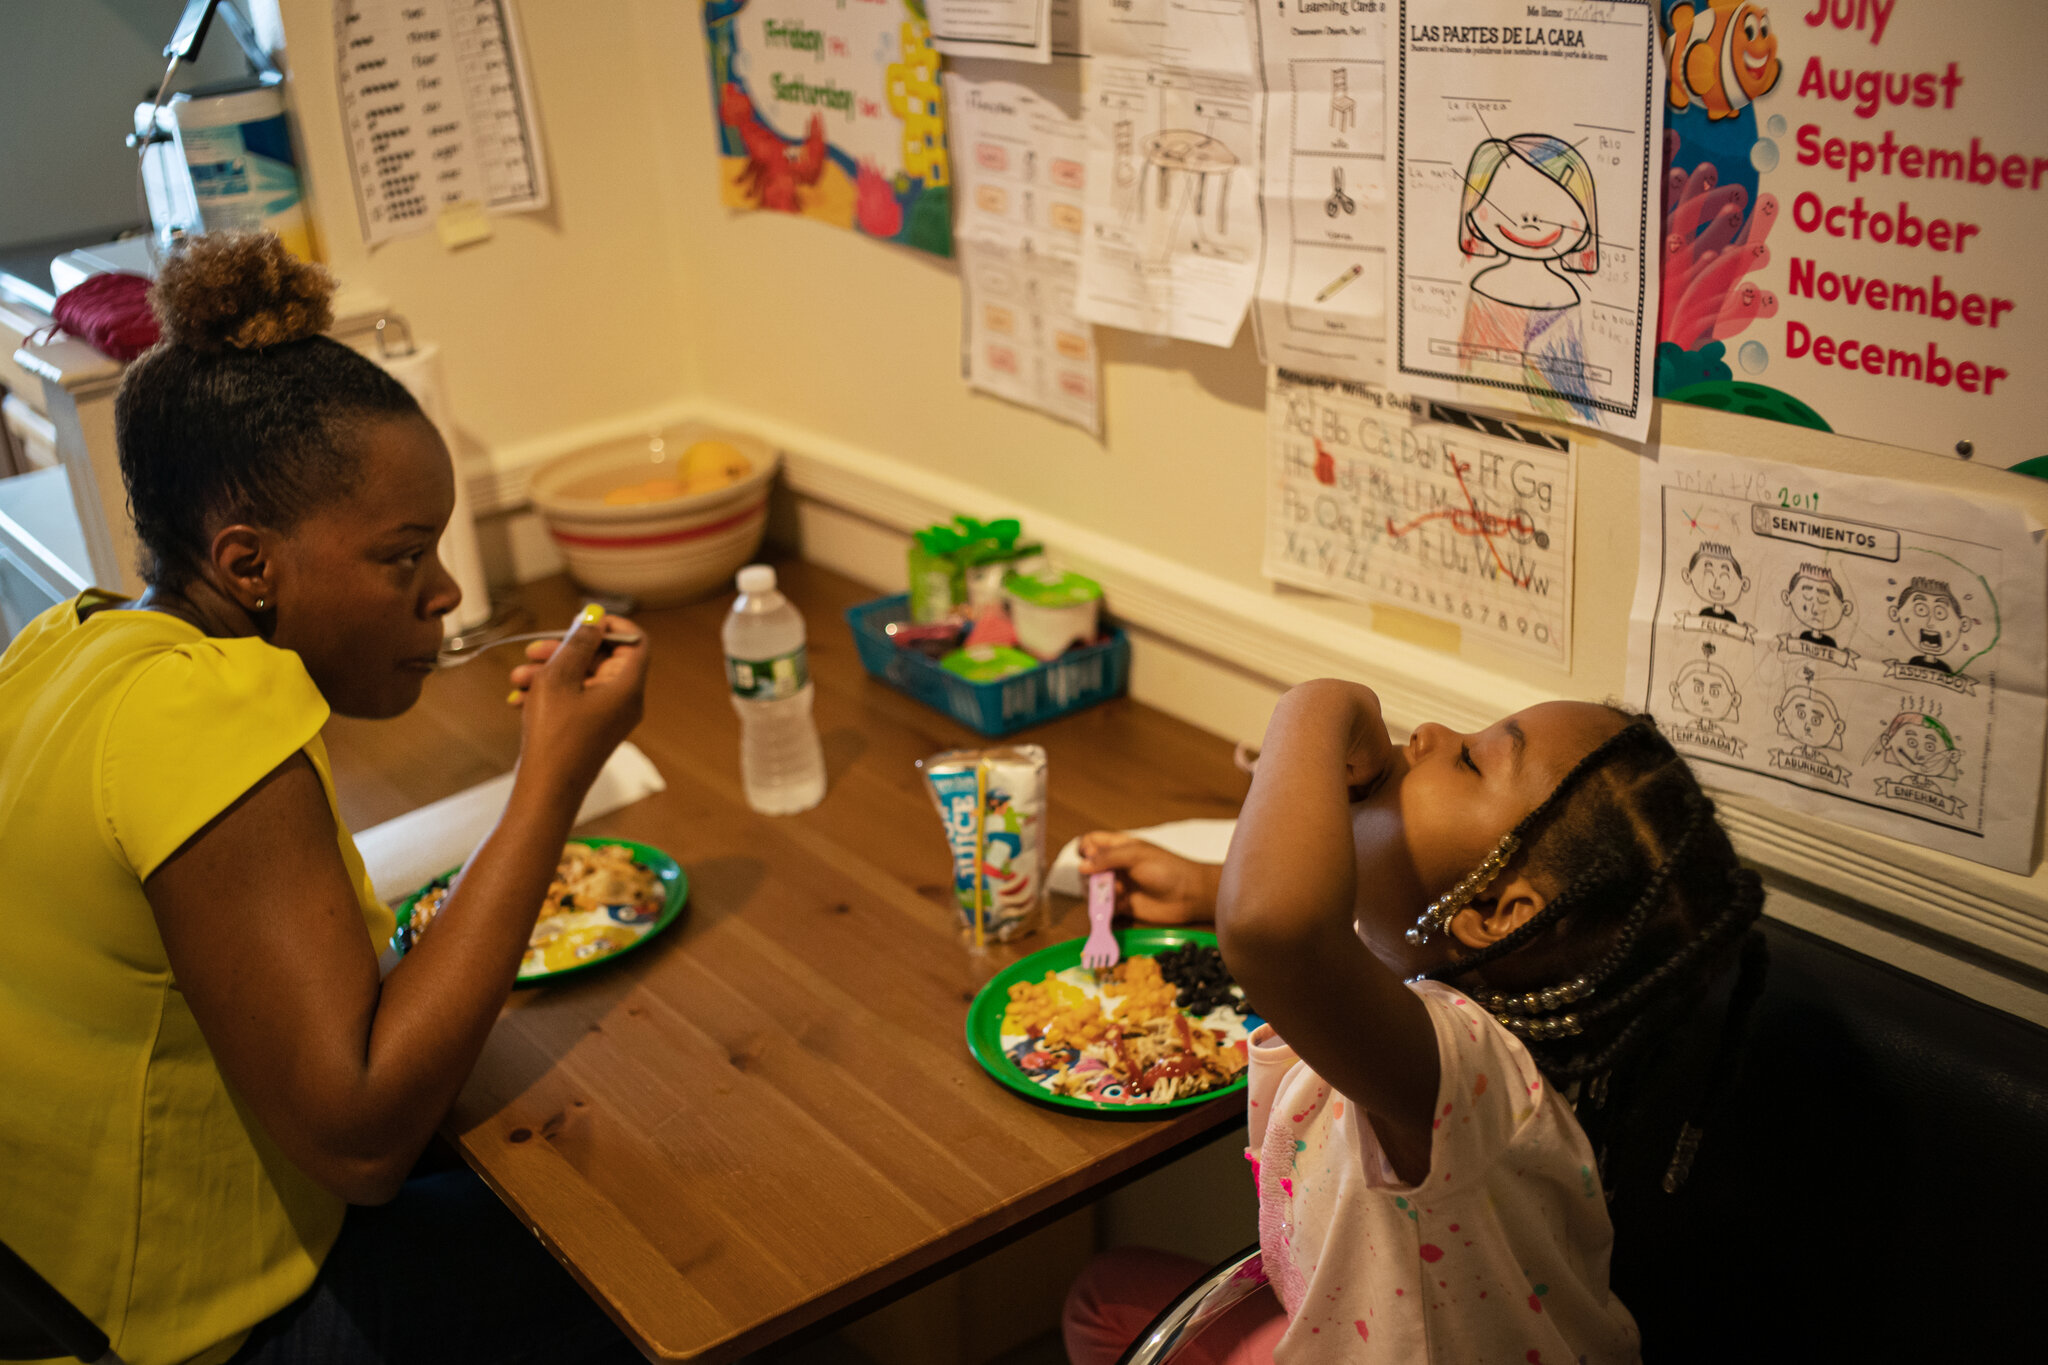 Leslie and her daughter Trinity enjoying the meal that nonprofit organizations like Masbia in Brooklyn or BronxWork make it possible for people that are struggling during the pandemic. Photo was taken by Todd Heisler.